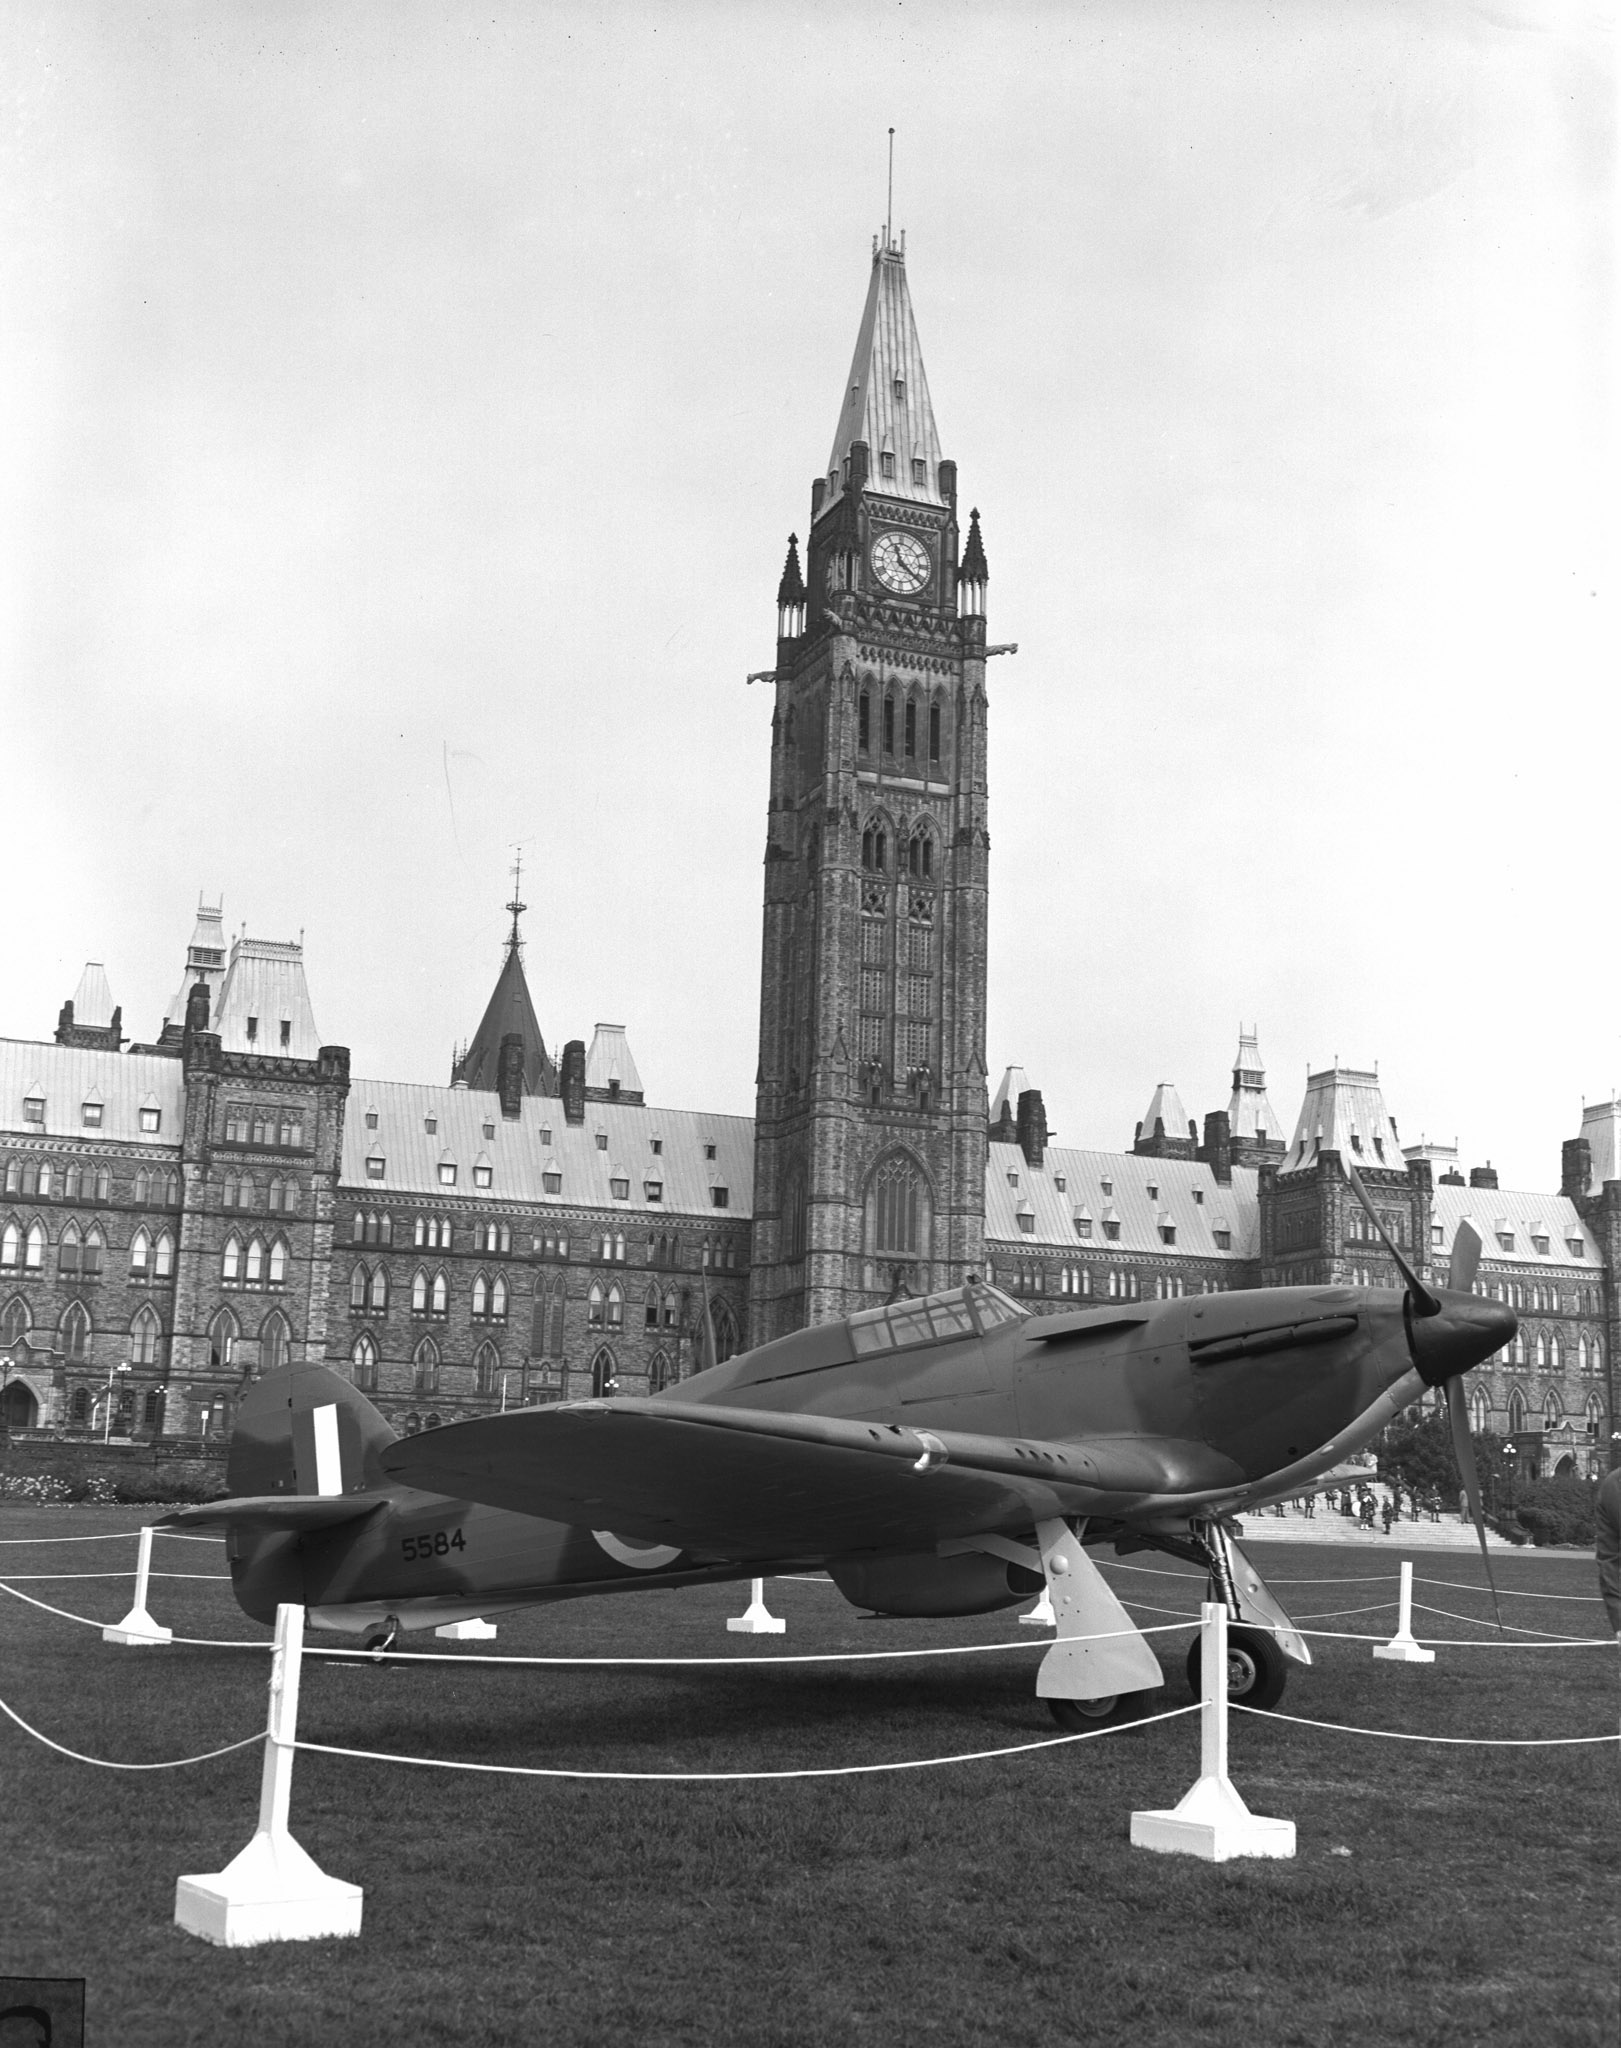 A Hawker Hurricane is displayed on the lawn of Parliament Hill during the Battle of Britain commemoration ceremony in 1960. PHOTO: PL-129420, DND Archives